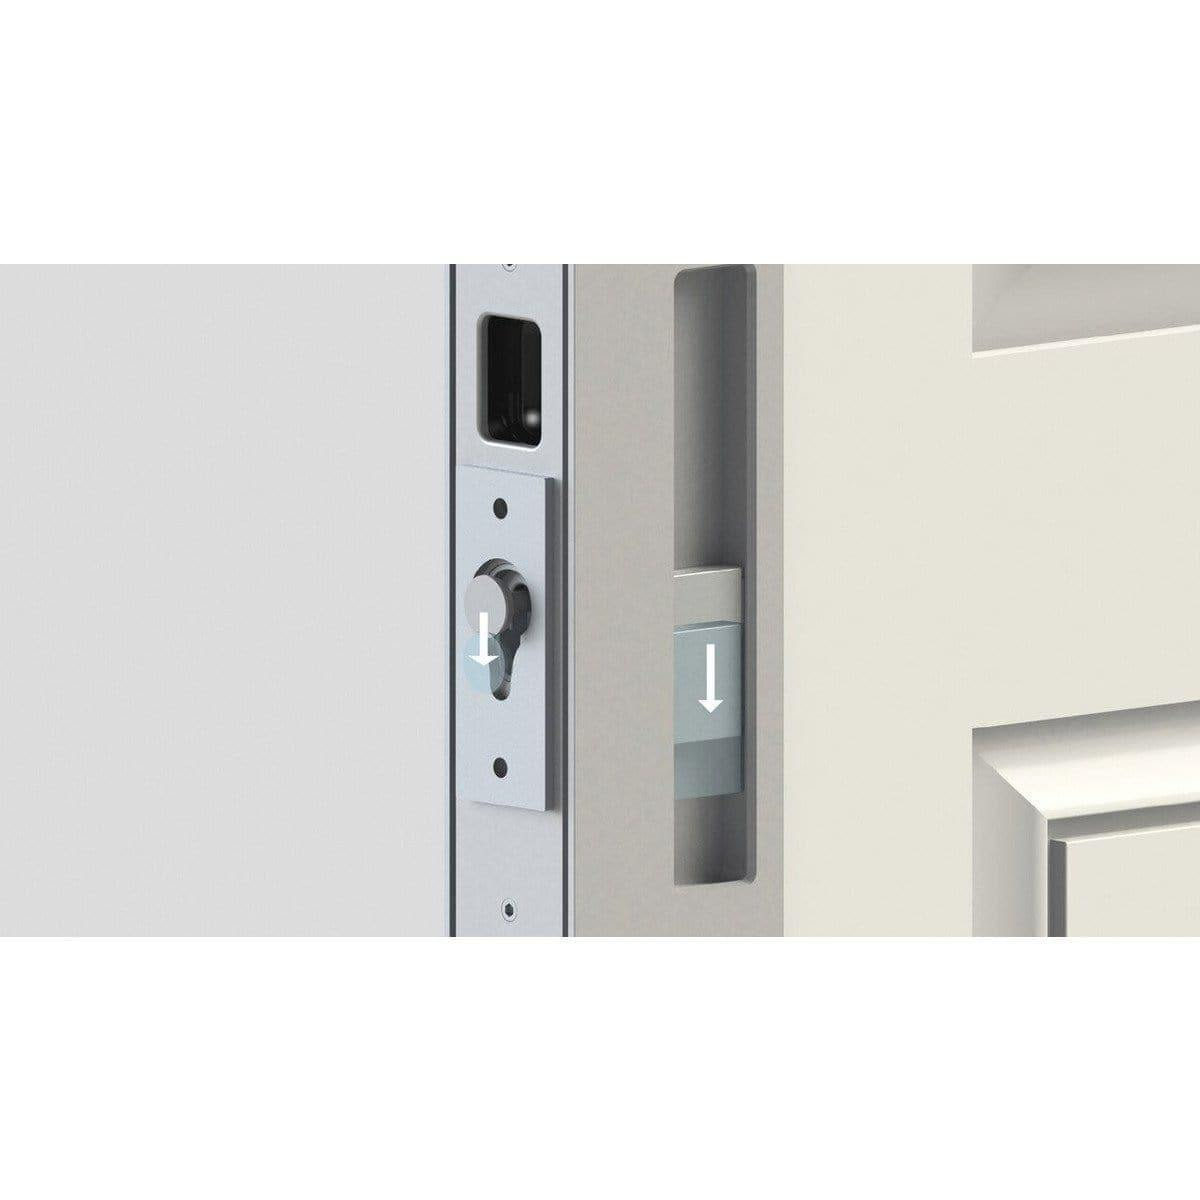 Magnetic Privacy Sliding Barn Door Lock & Handle - Sliding Barn Door Hardware by RealCraft